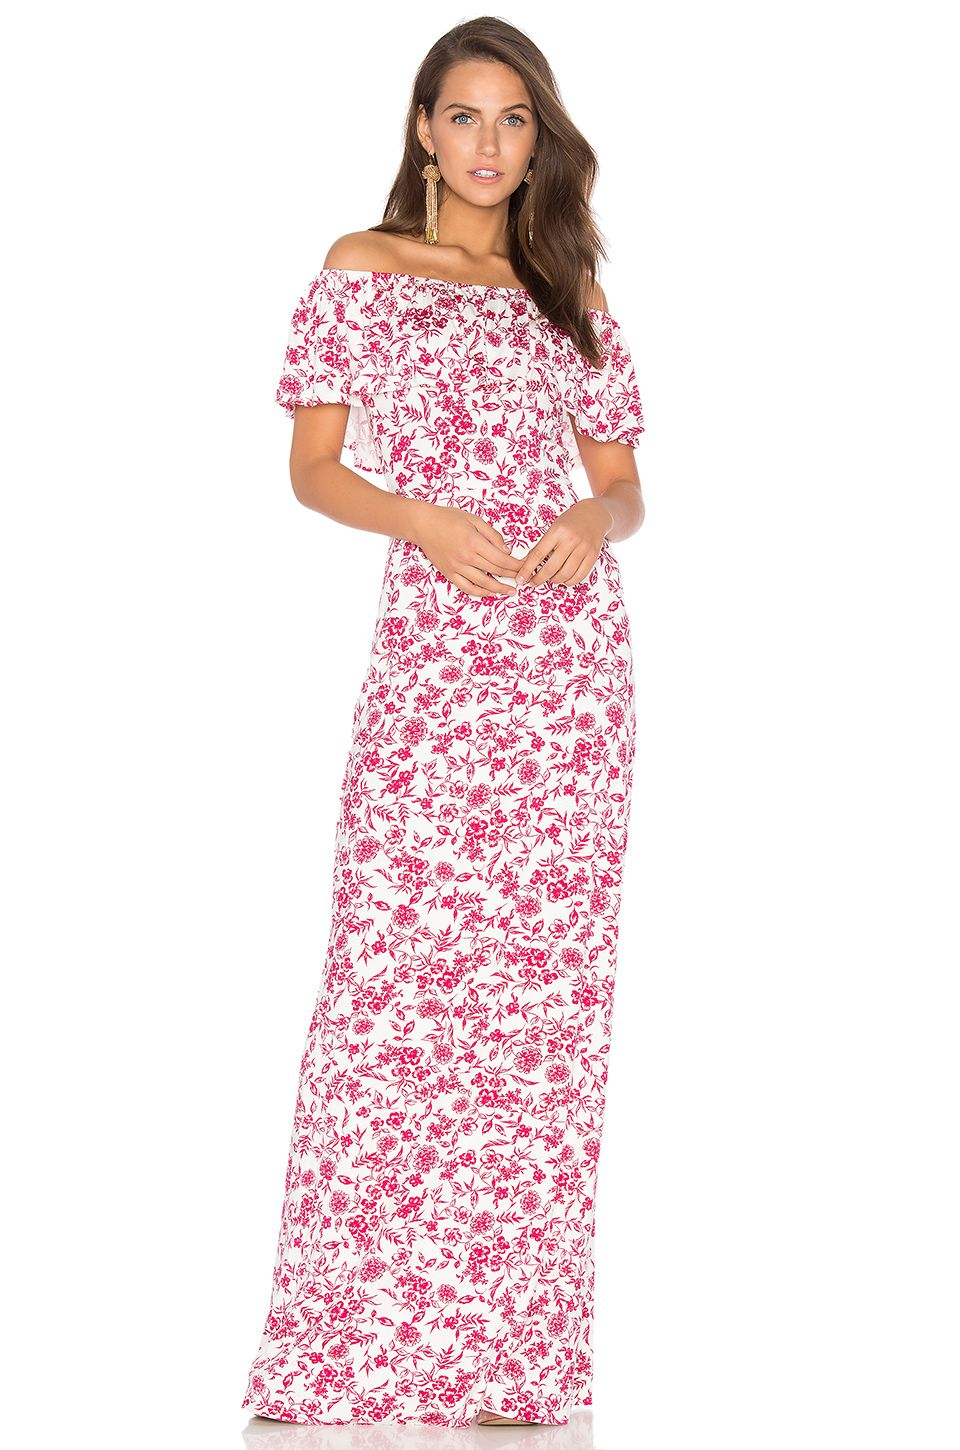 Dress In Pally Rachel Jardin Reston Lover Maxi xIfIqawt4